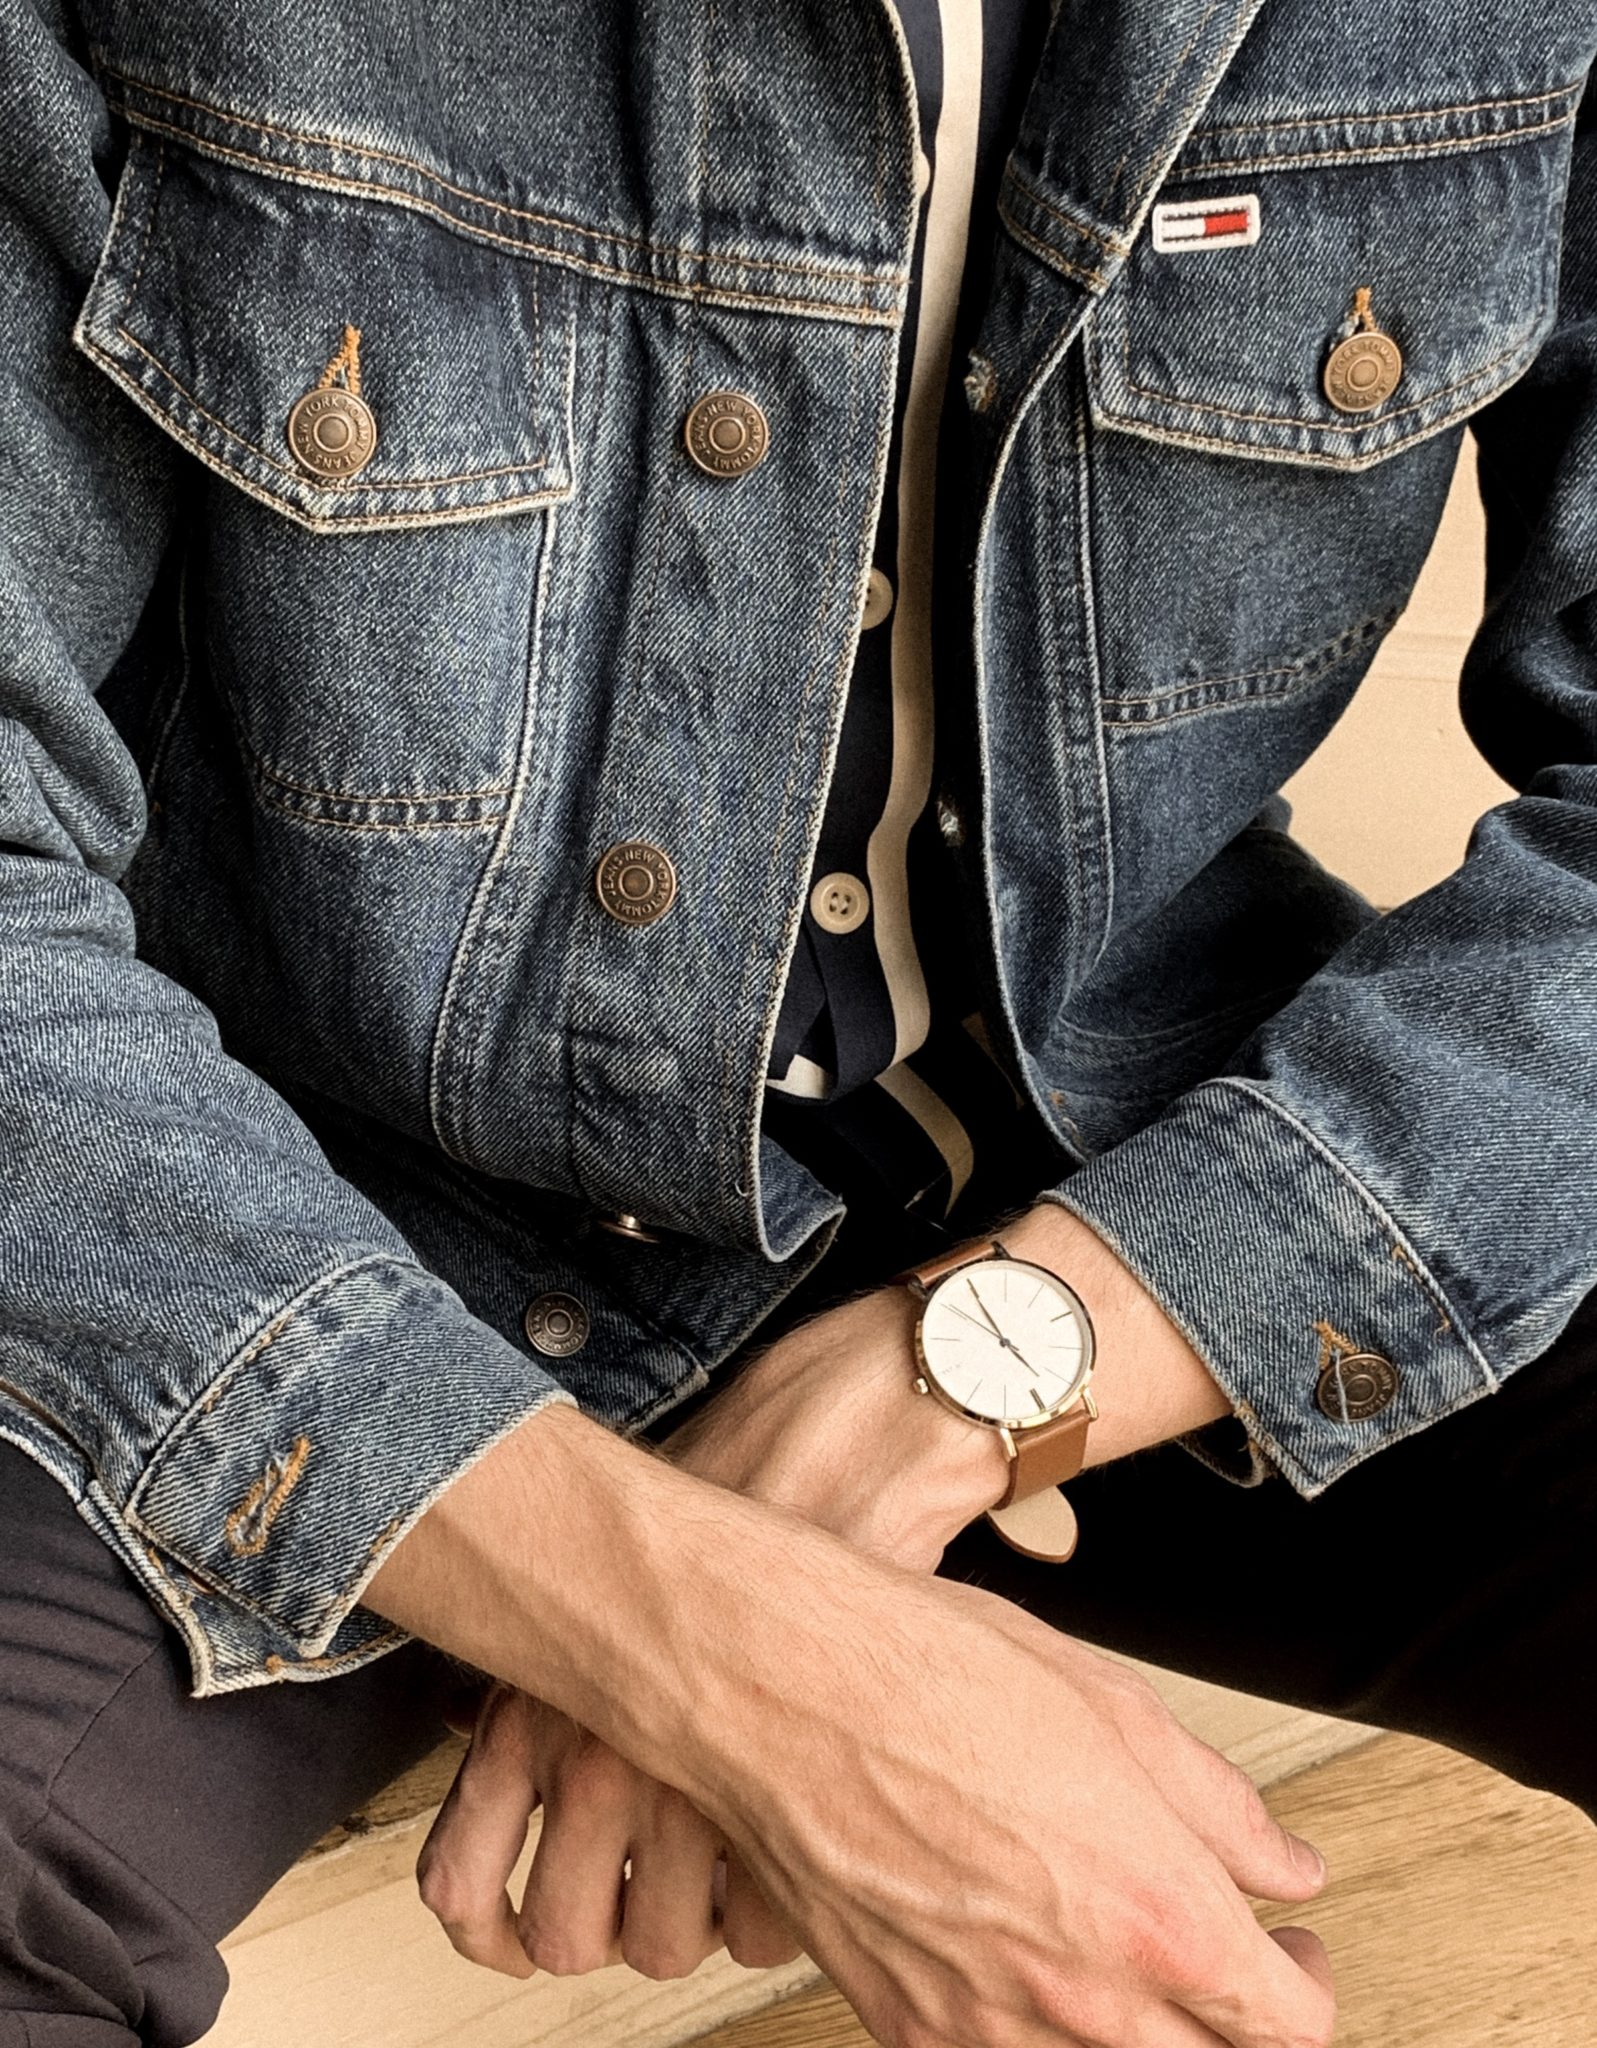 Octave watches